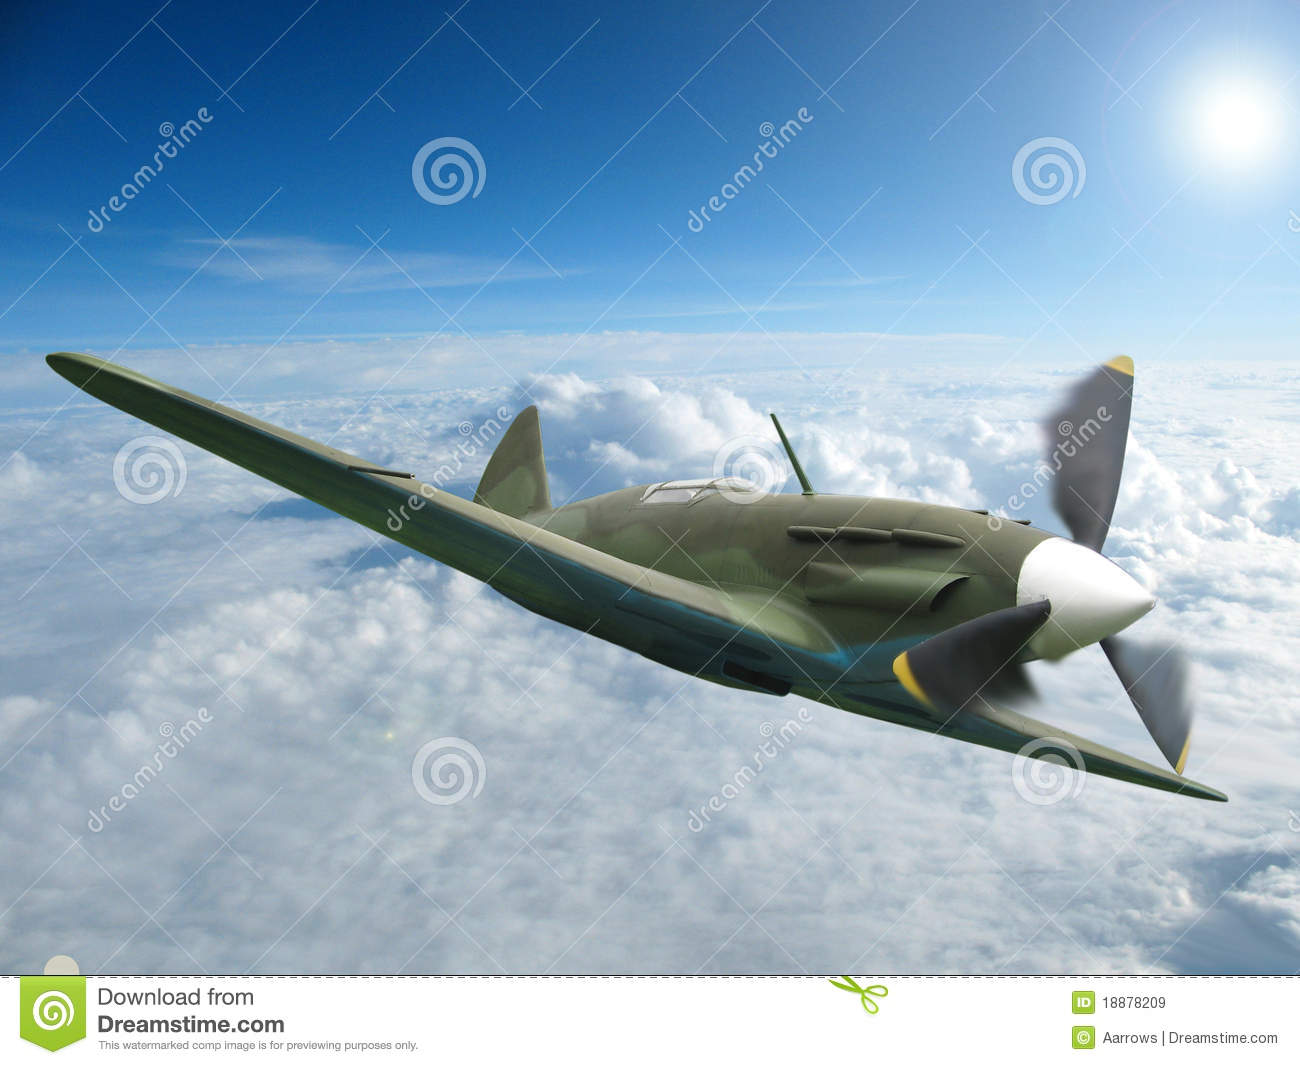 Soviet MiG fighter http://www.dreamstime.com/royalty-free-stock-images-mig-3-soviet-ww2-fighter-image18878209